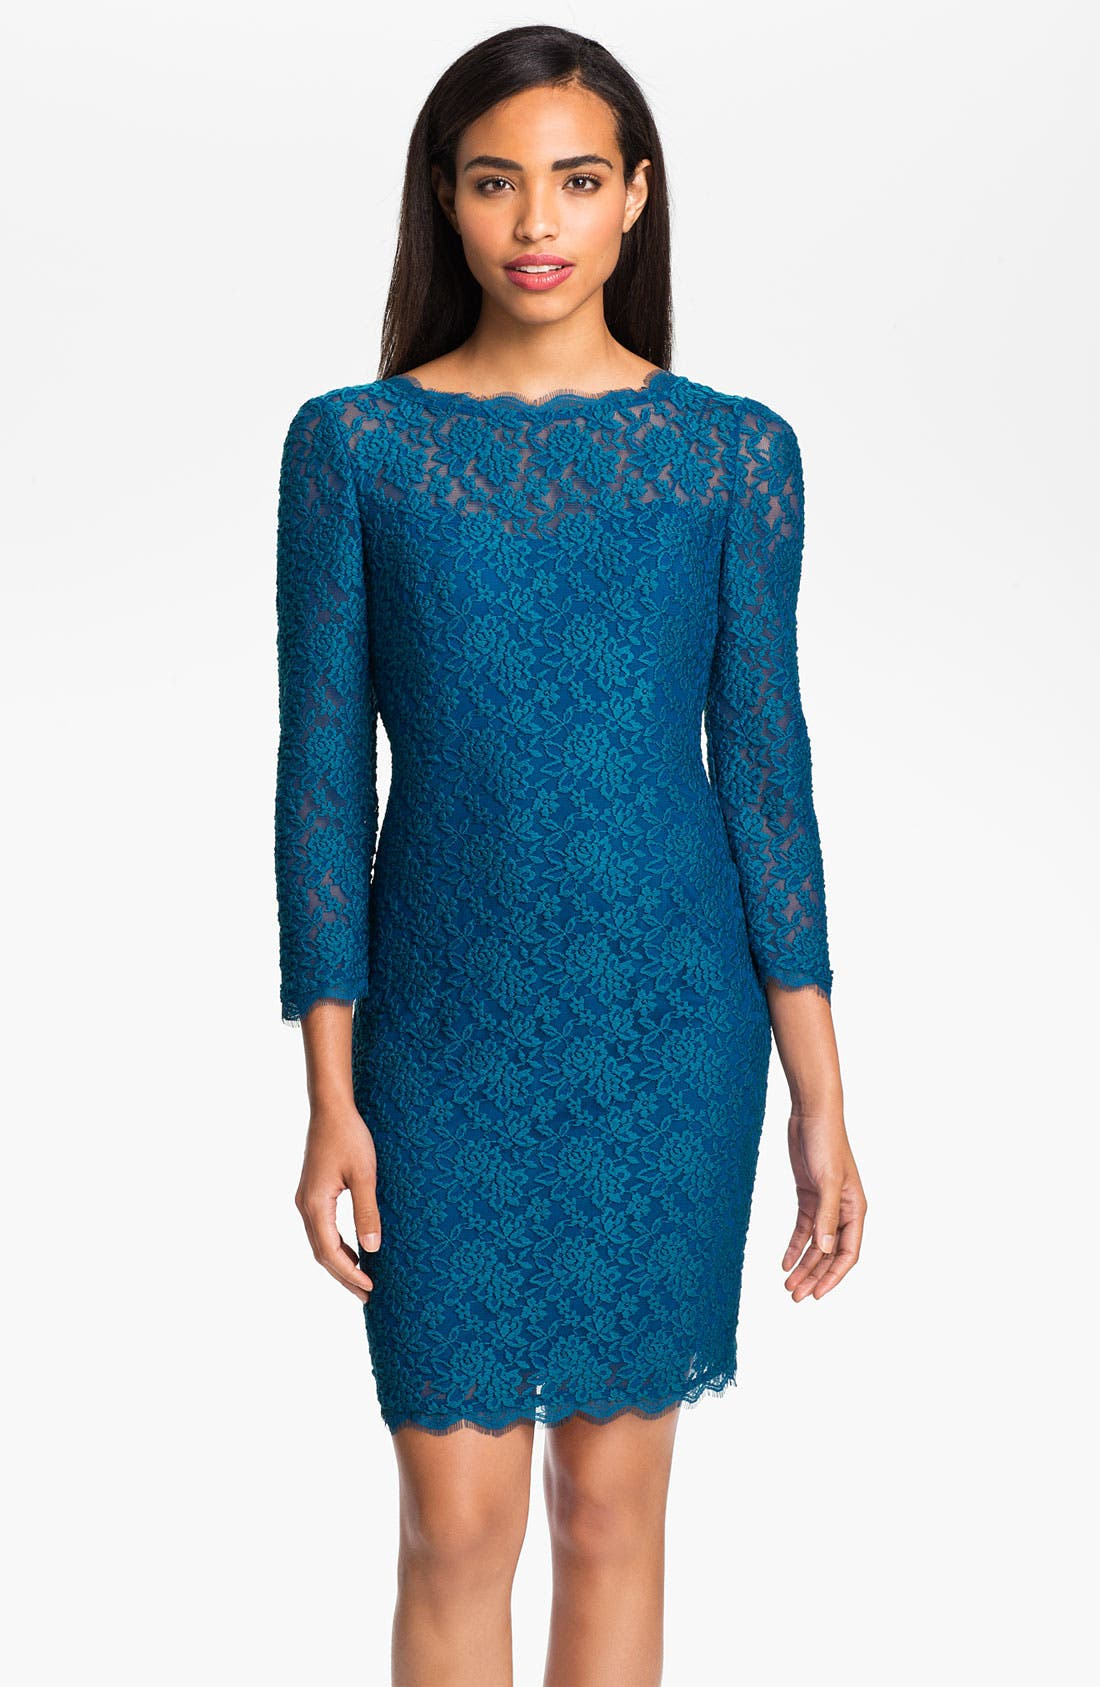 Alternate Image 1 Selected - Adrianna Papell V-Back Lace Sheath Dress (Petite)